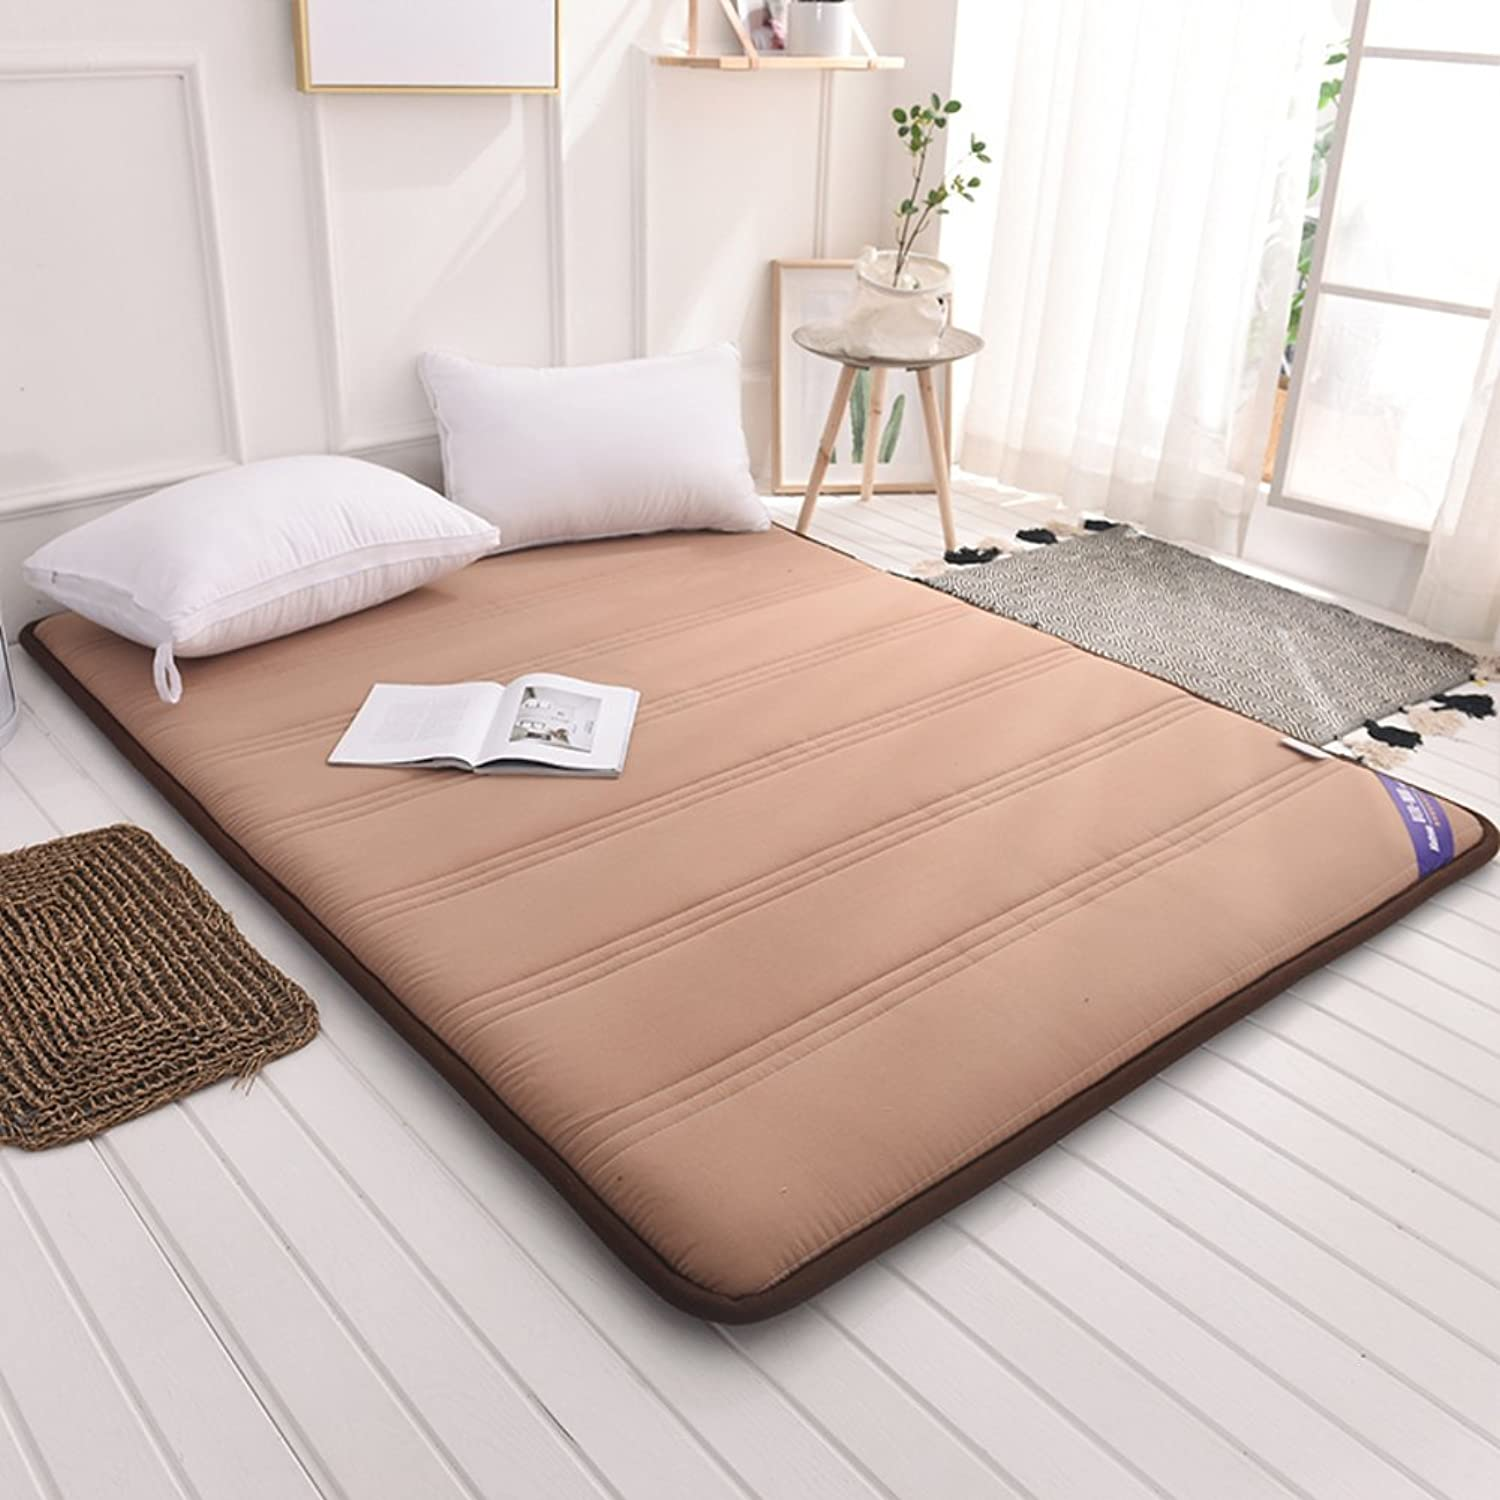 Foldable Queen Size Mattress,Tatami Floor mat Portable Sleeping pad Dorm futon Mattress Topper Quilted Bed Predection pad-A 120x200cm(47x79inch)